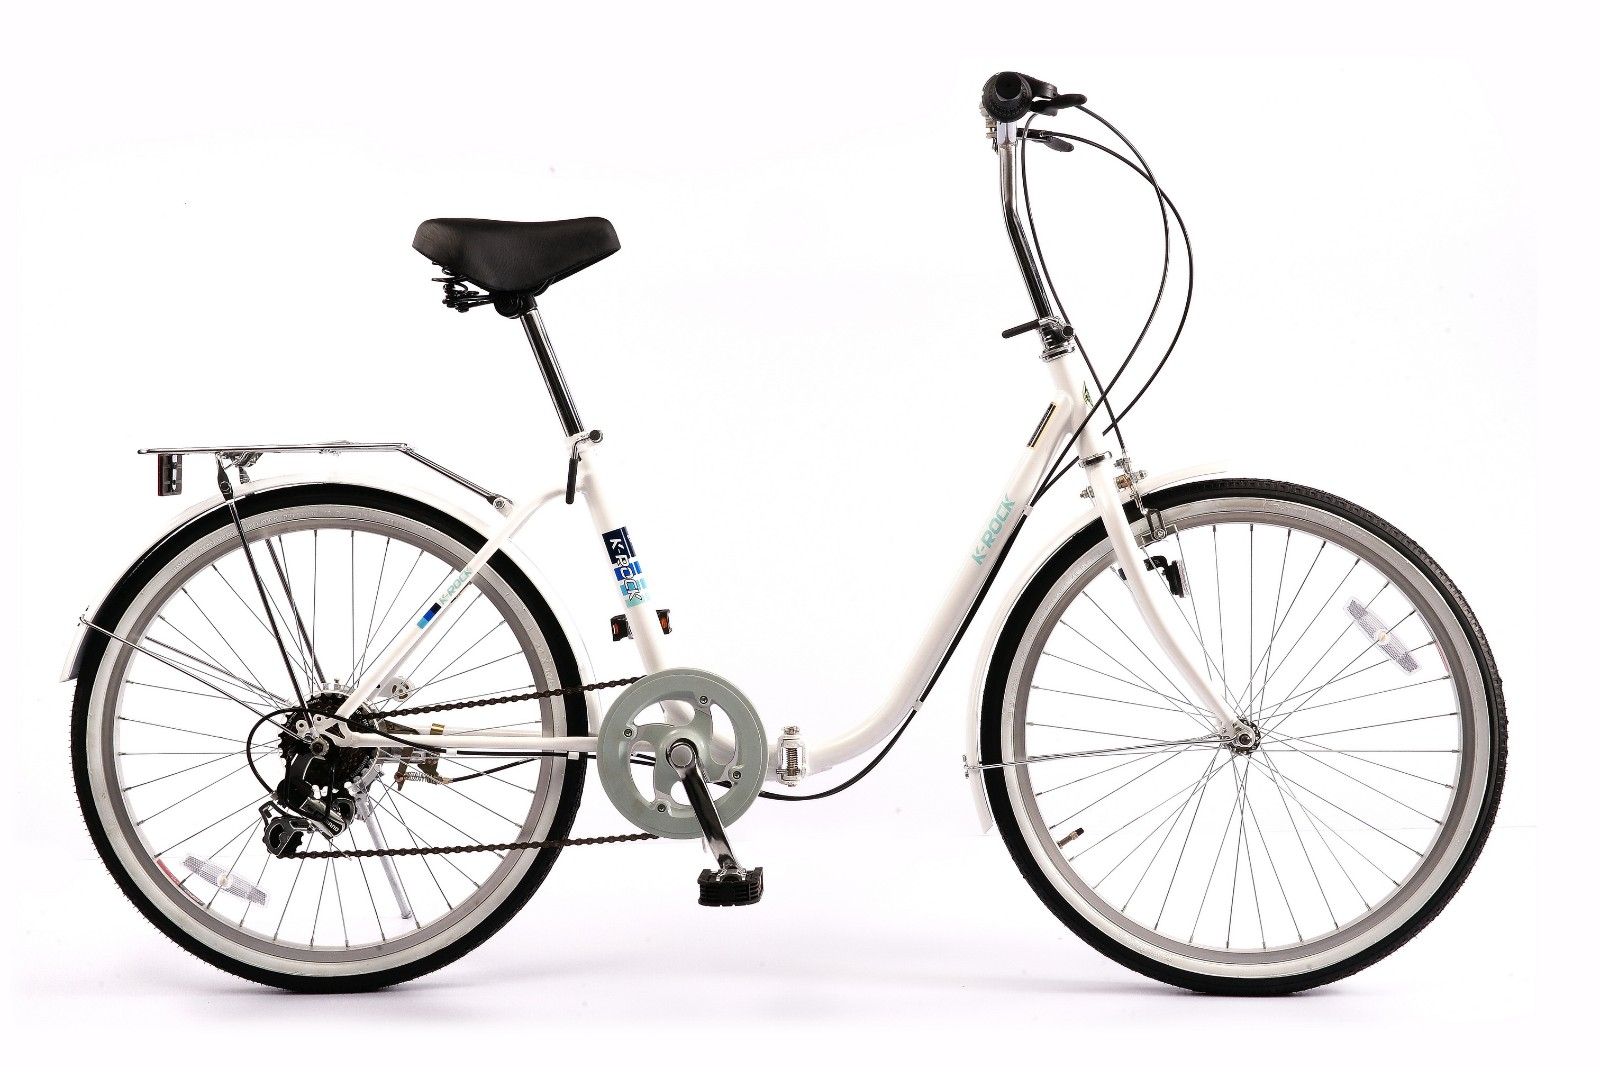 24 INCH STEEL FOLDING BICYCLE with 6 speeds